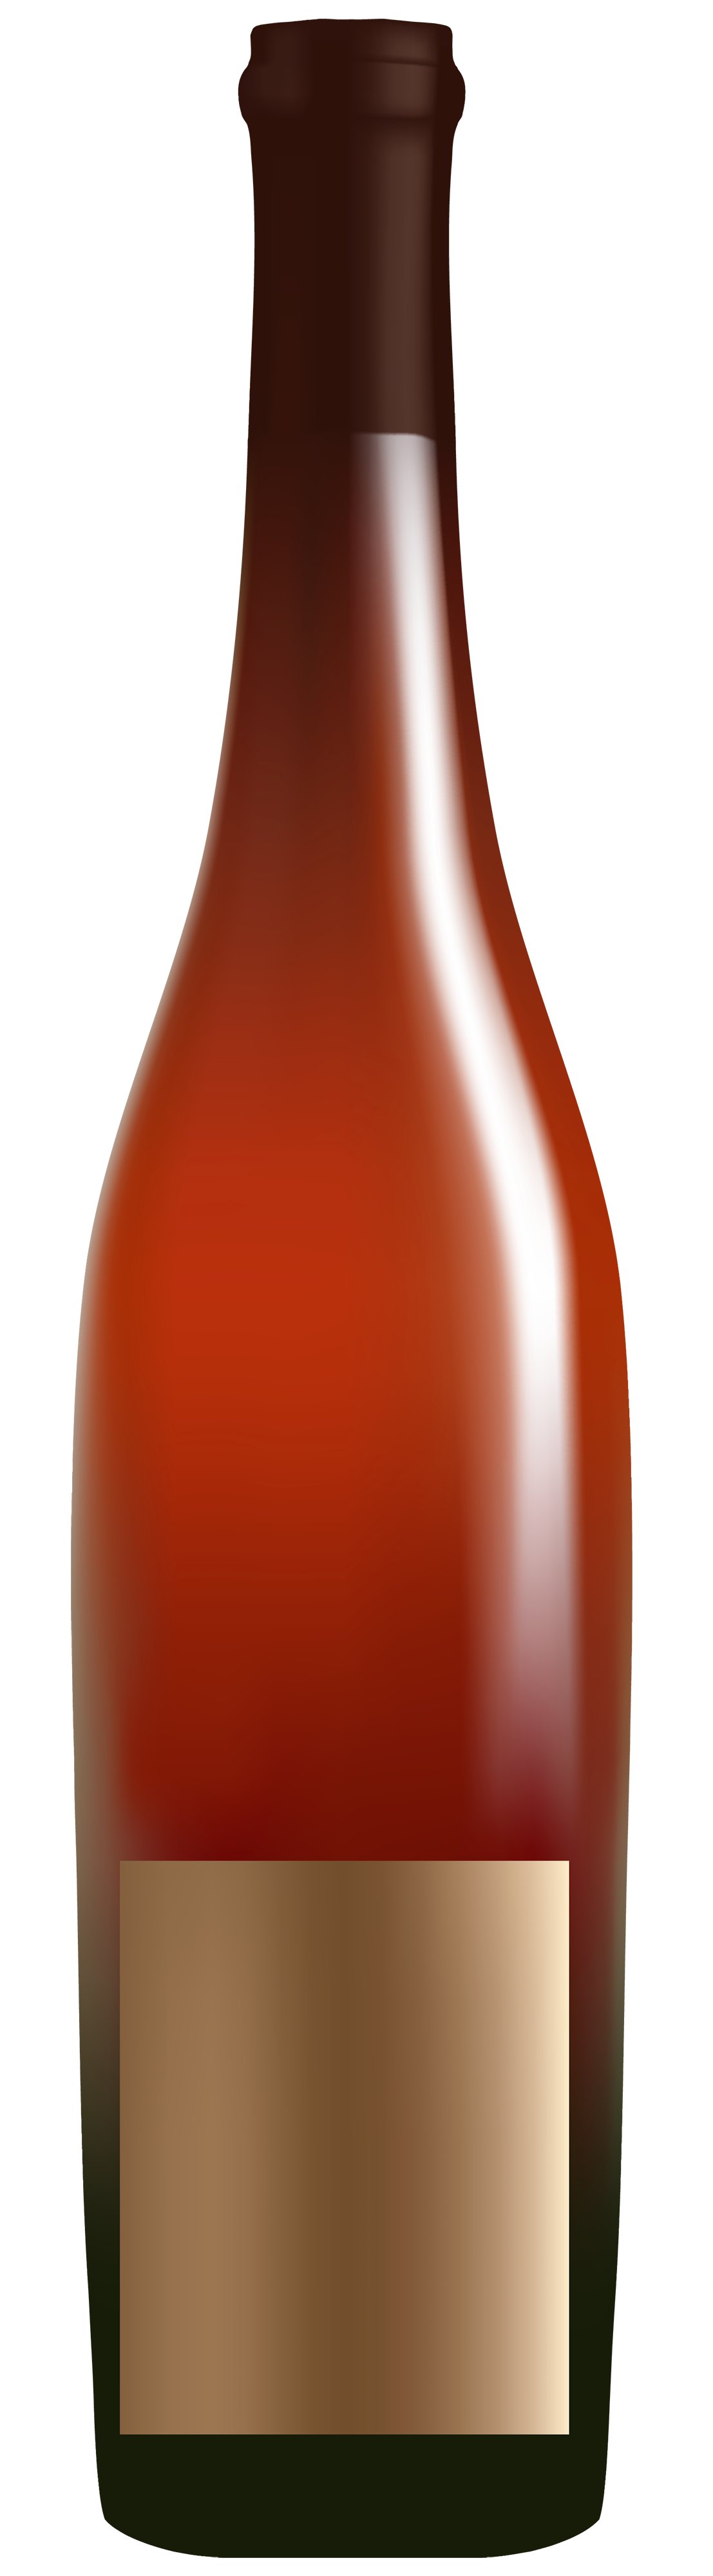 Alcohol clipart png. Red bottle best web